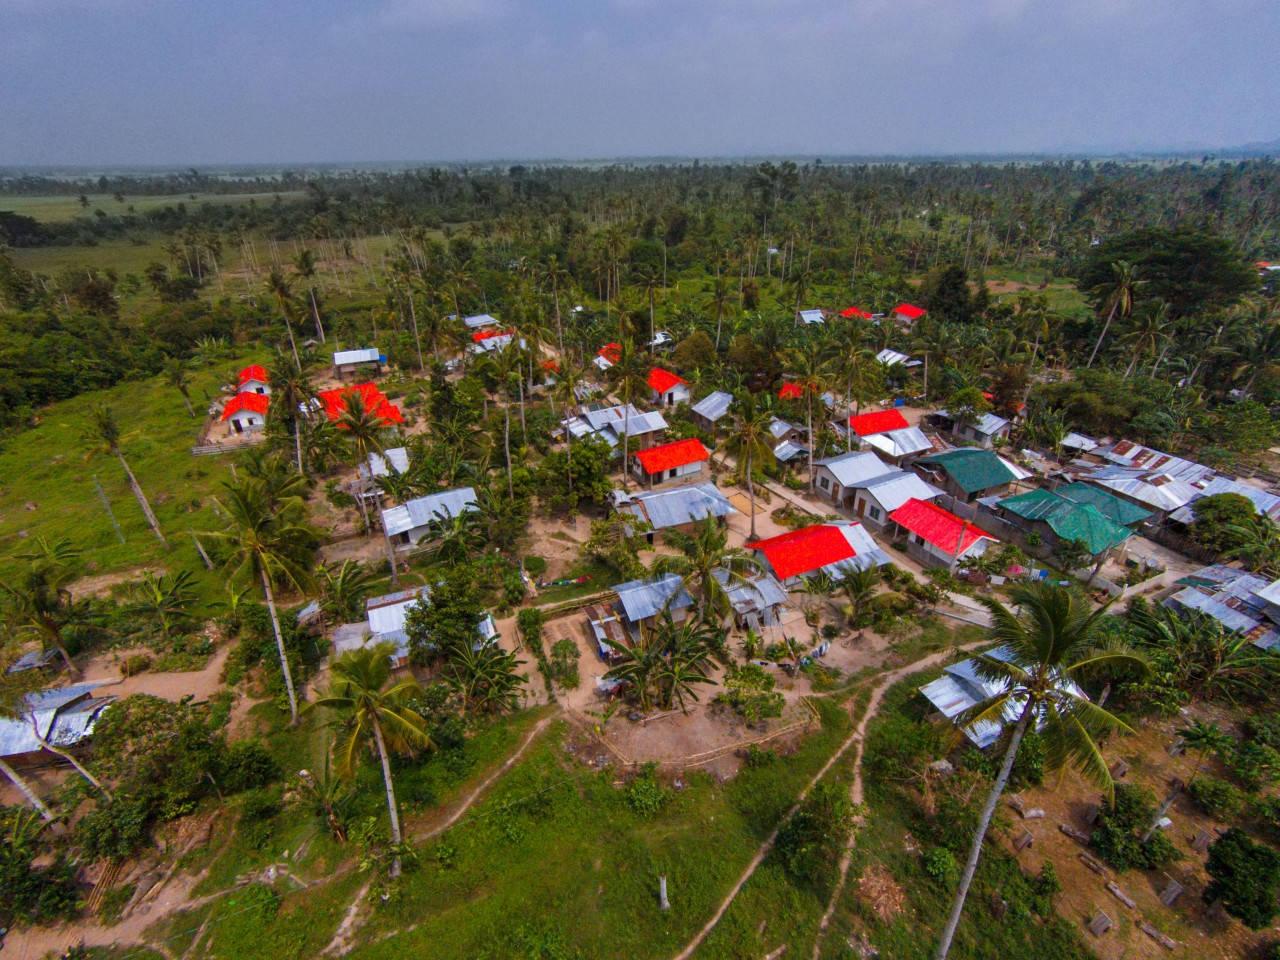 Dagami, Leyte, 2015. Aerial view of Red Cross Red Roof Shelter in Brgy. Balilit, Dagami in Leyte. Rommel Cabrera / IFRC.